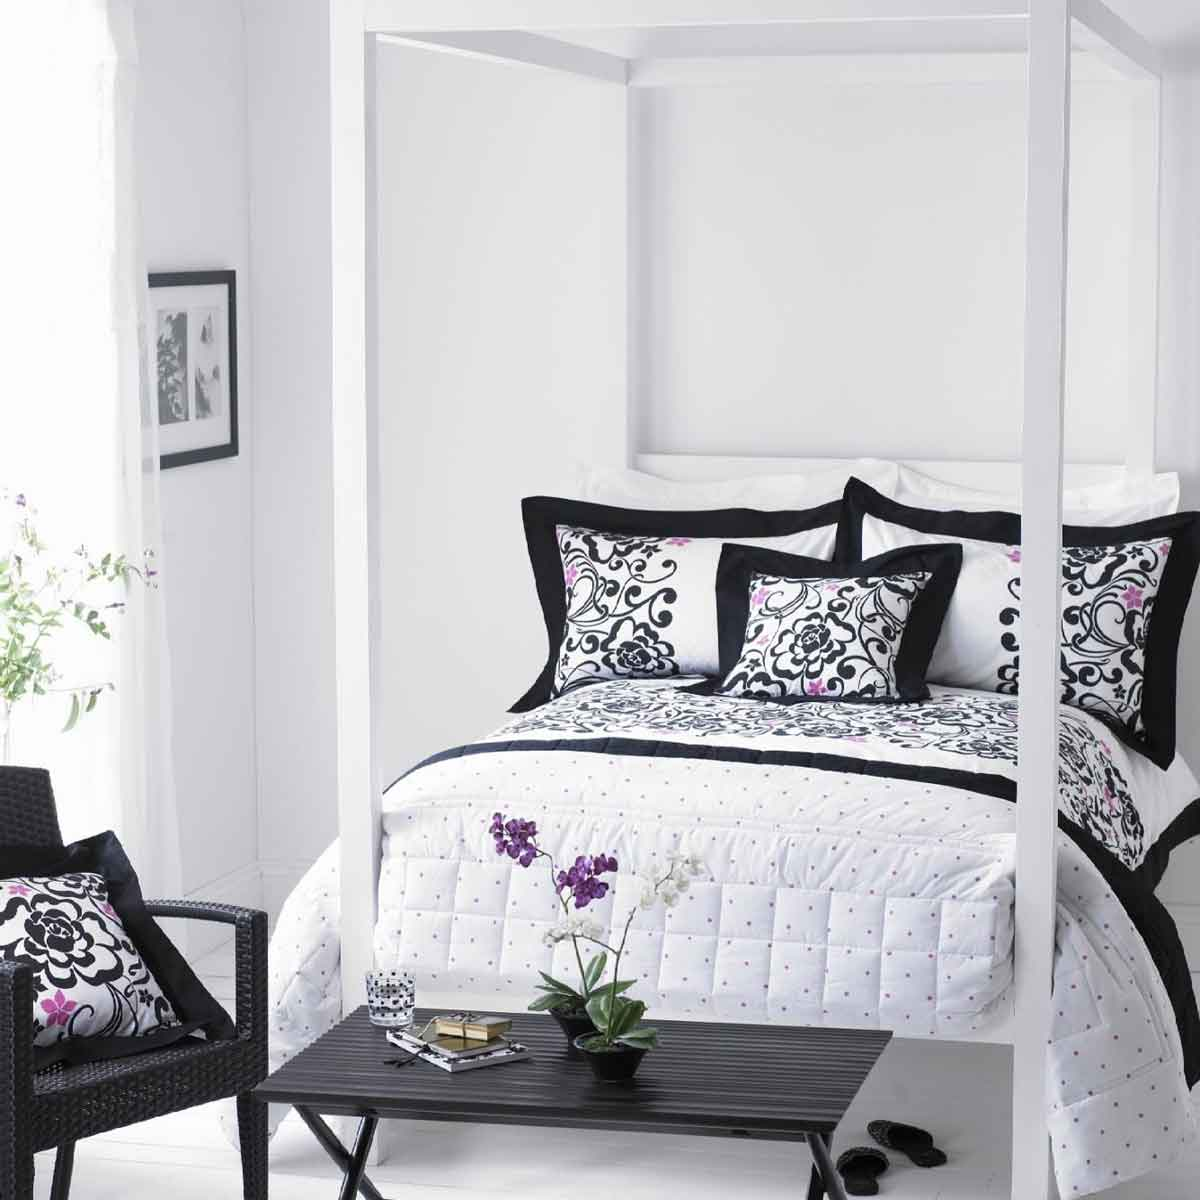 Black white grey bedroom 2017 grasscloth wallpaper Black white and grey bedroom designs